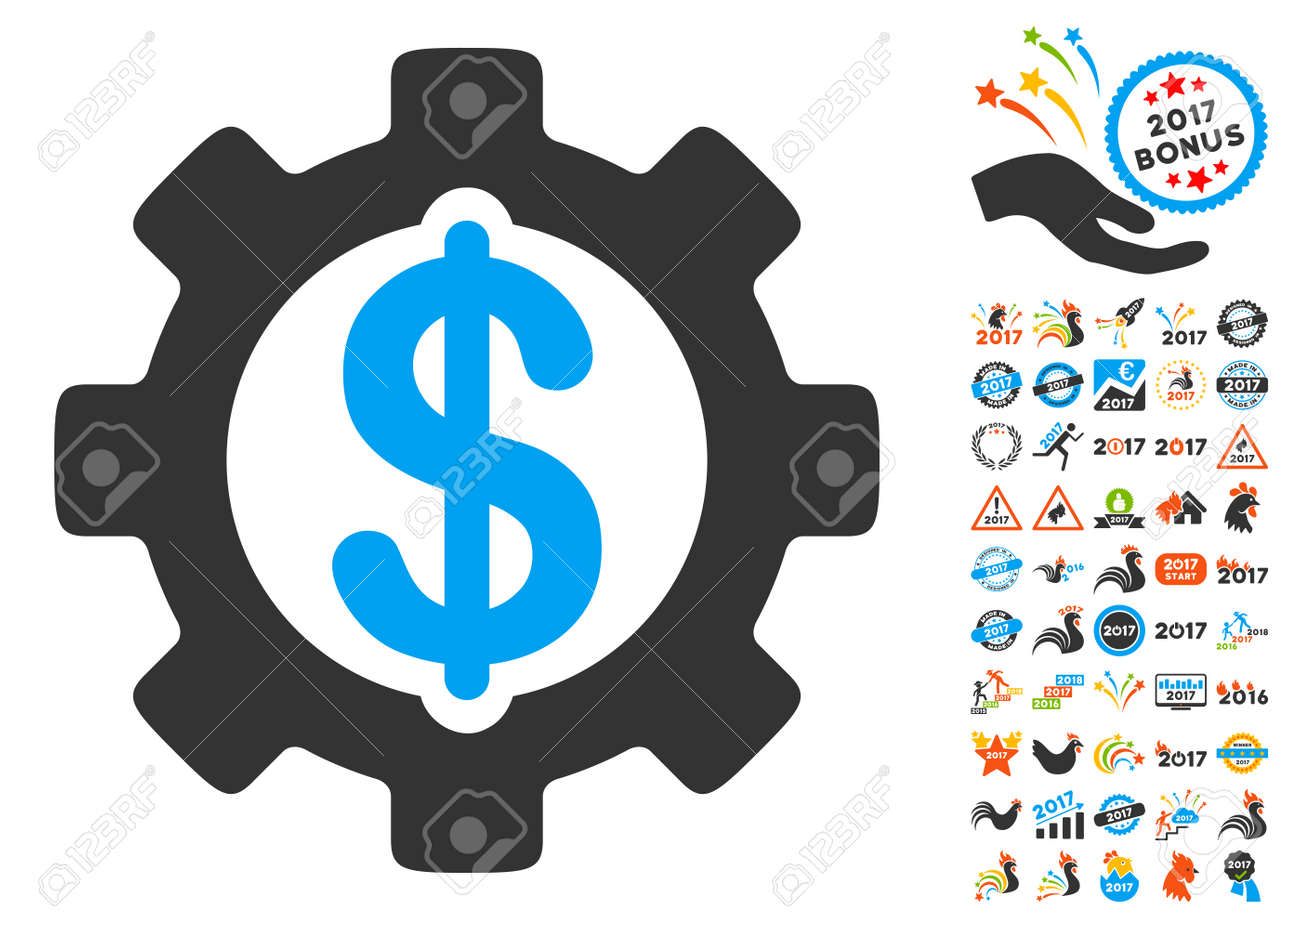 development cost icon with bonus 2017 new year clip art vector illustration style is flat